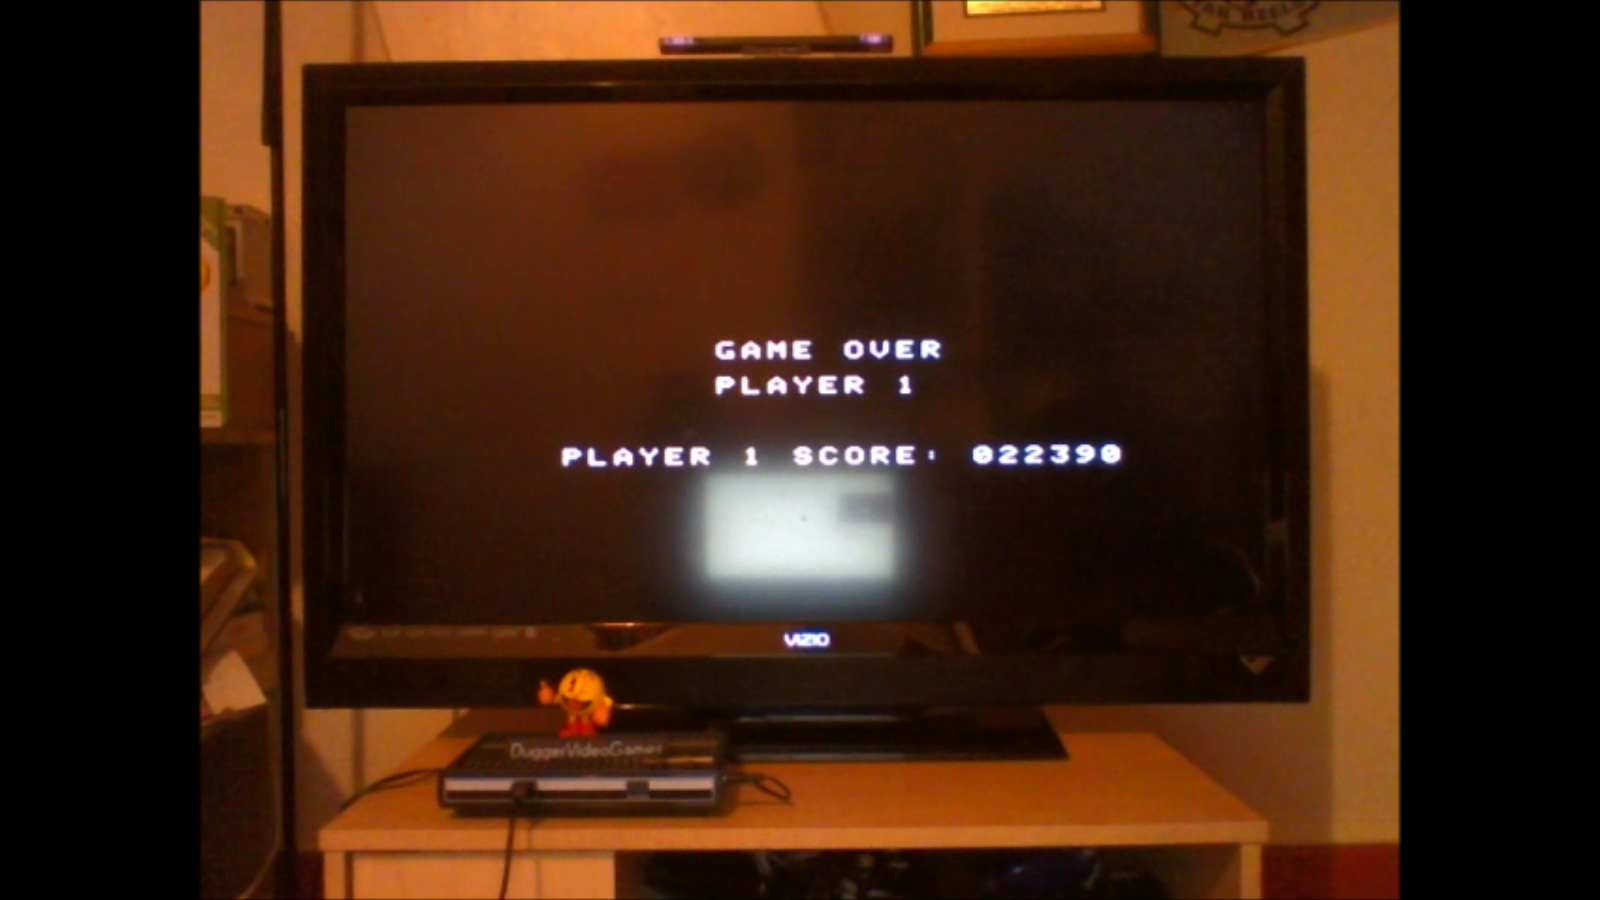 DuggerVideoGames: Dukes of Hazzard: Skill 1 (Colecovision Emulated) 22,390 points on 2016-08-08 21:09:21